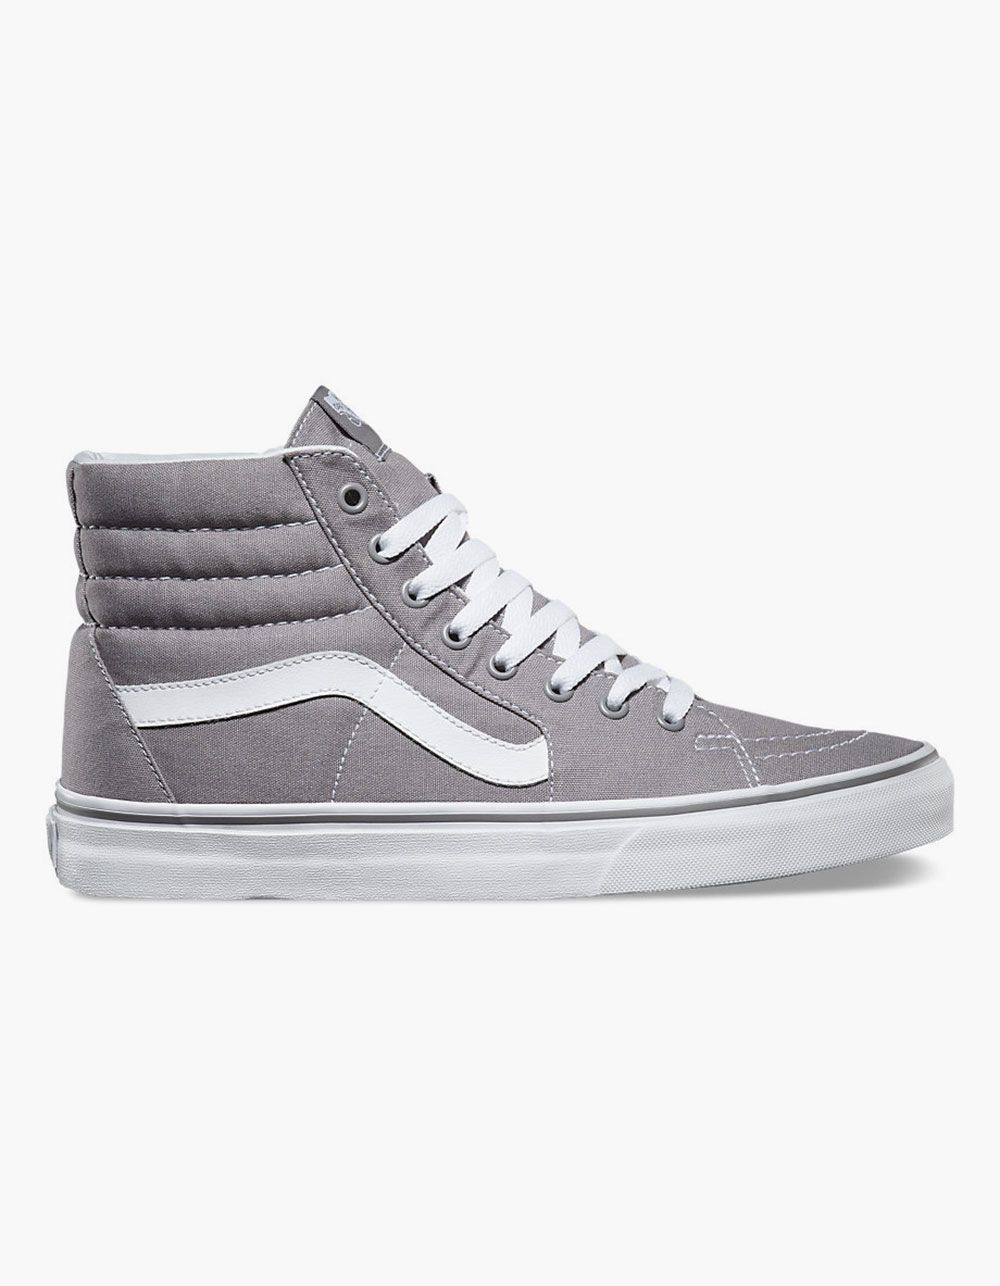 VANS Sk8 Hi Shoes 261765115 joggeskoGrå høye topp varebiler joggesko Gray high top vans